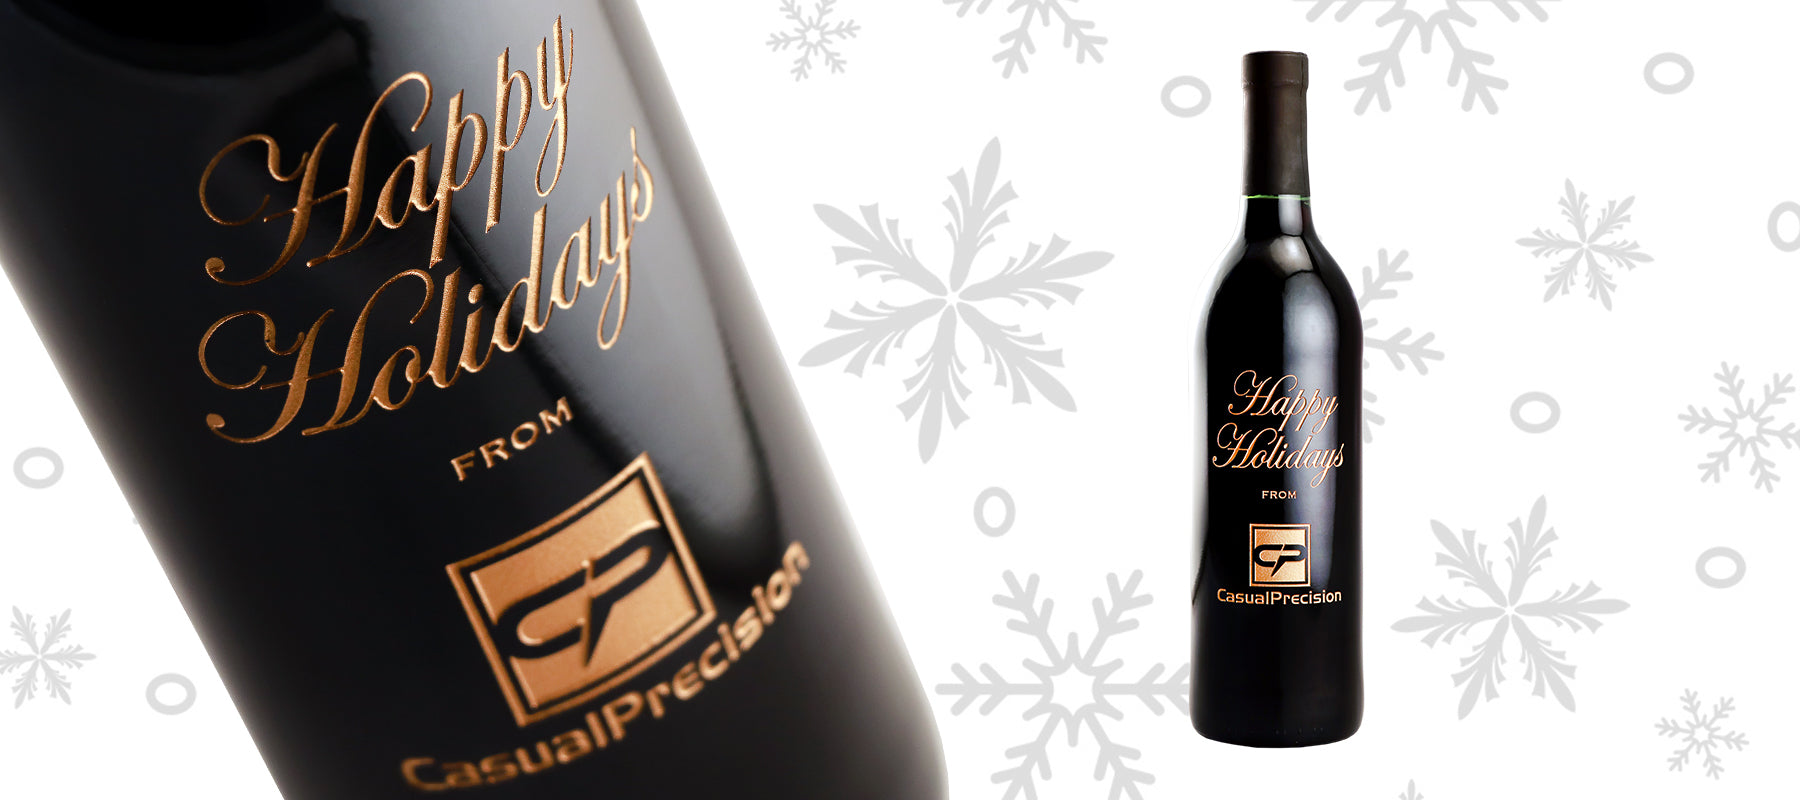 Happy Holidays custom etched wine company Christmas gift by Etching Expressions